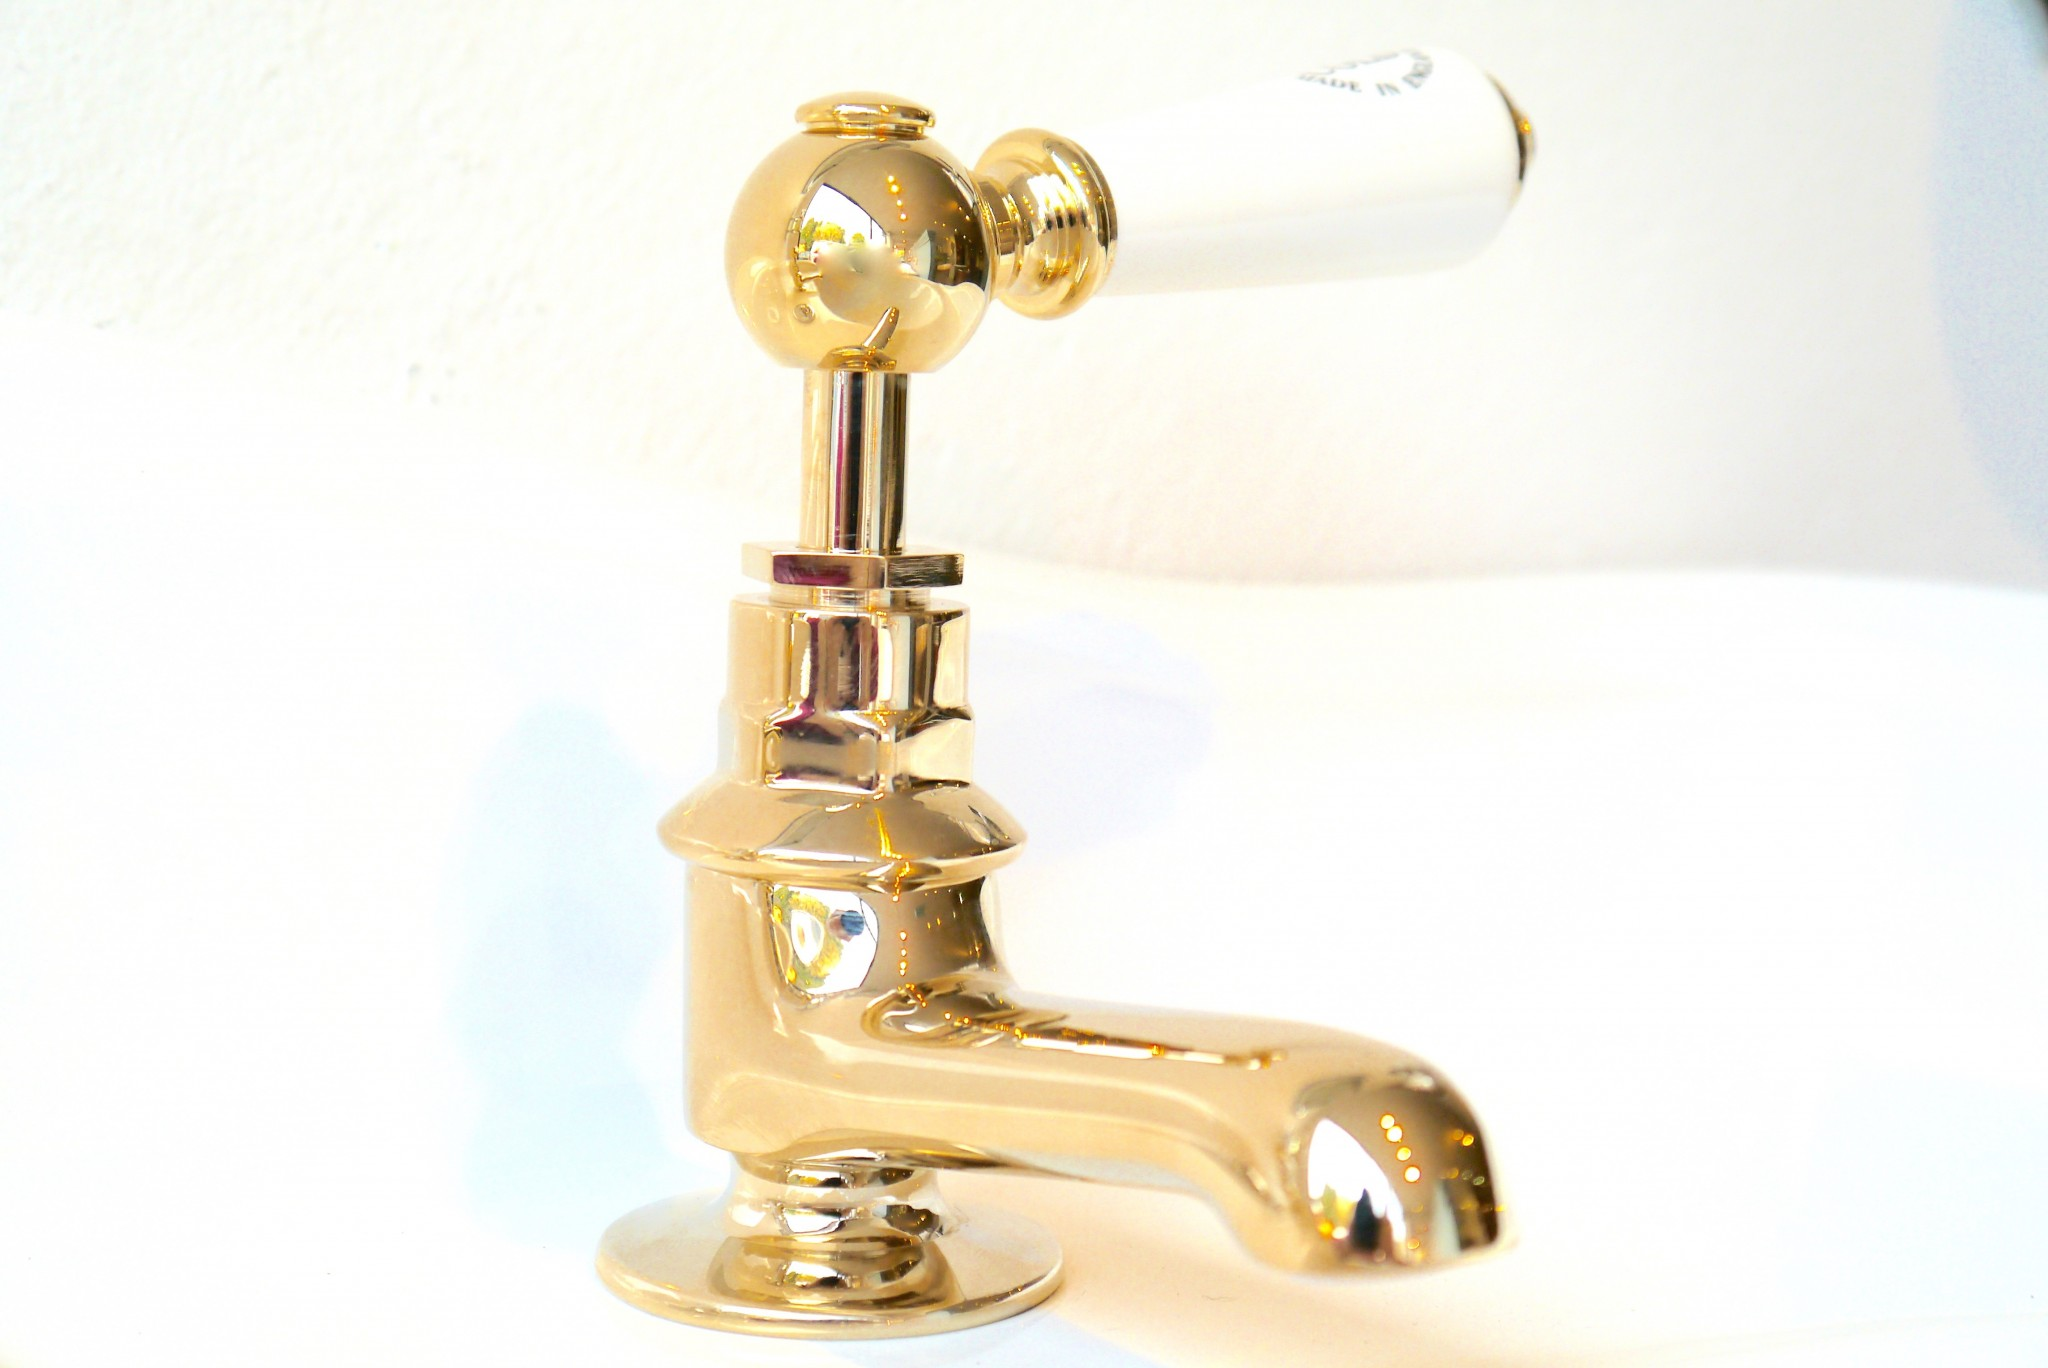 C230 Basin Tap in Gold Plate finish with White leavers.